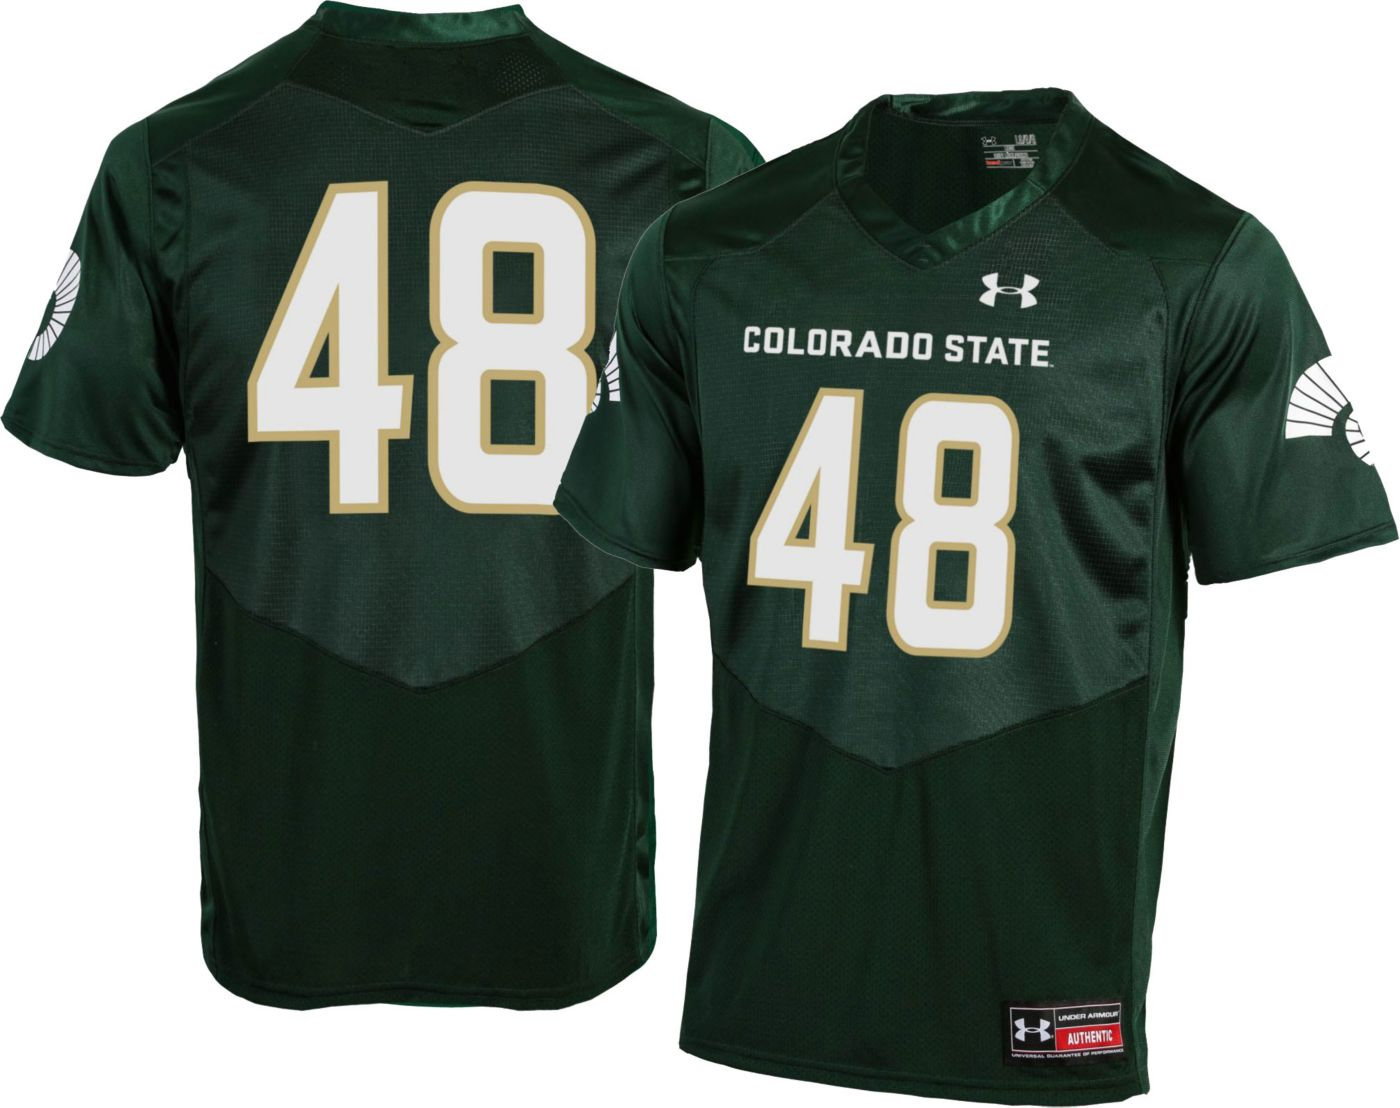 Under Armour Men's Colorado State Rams #48 Green Replica Football Jersey